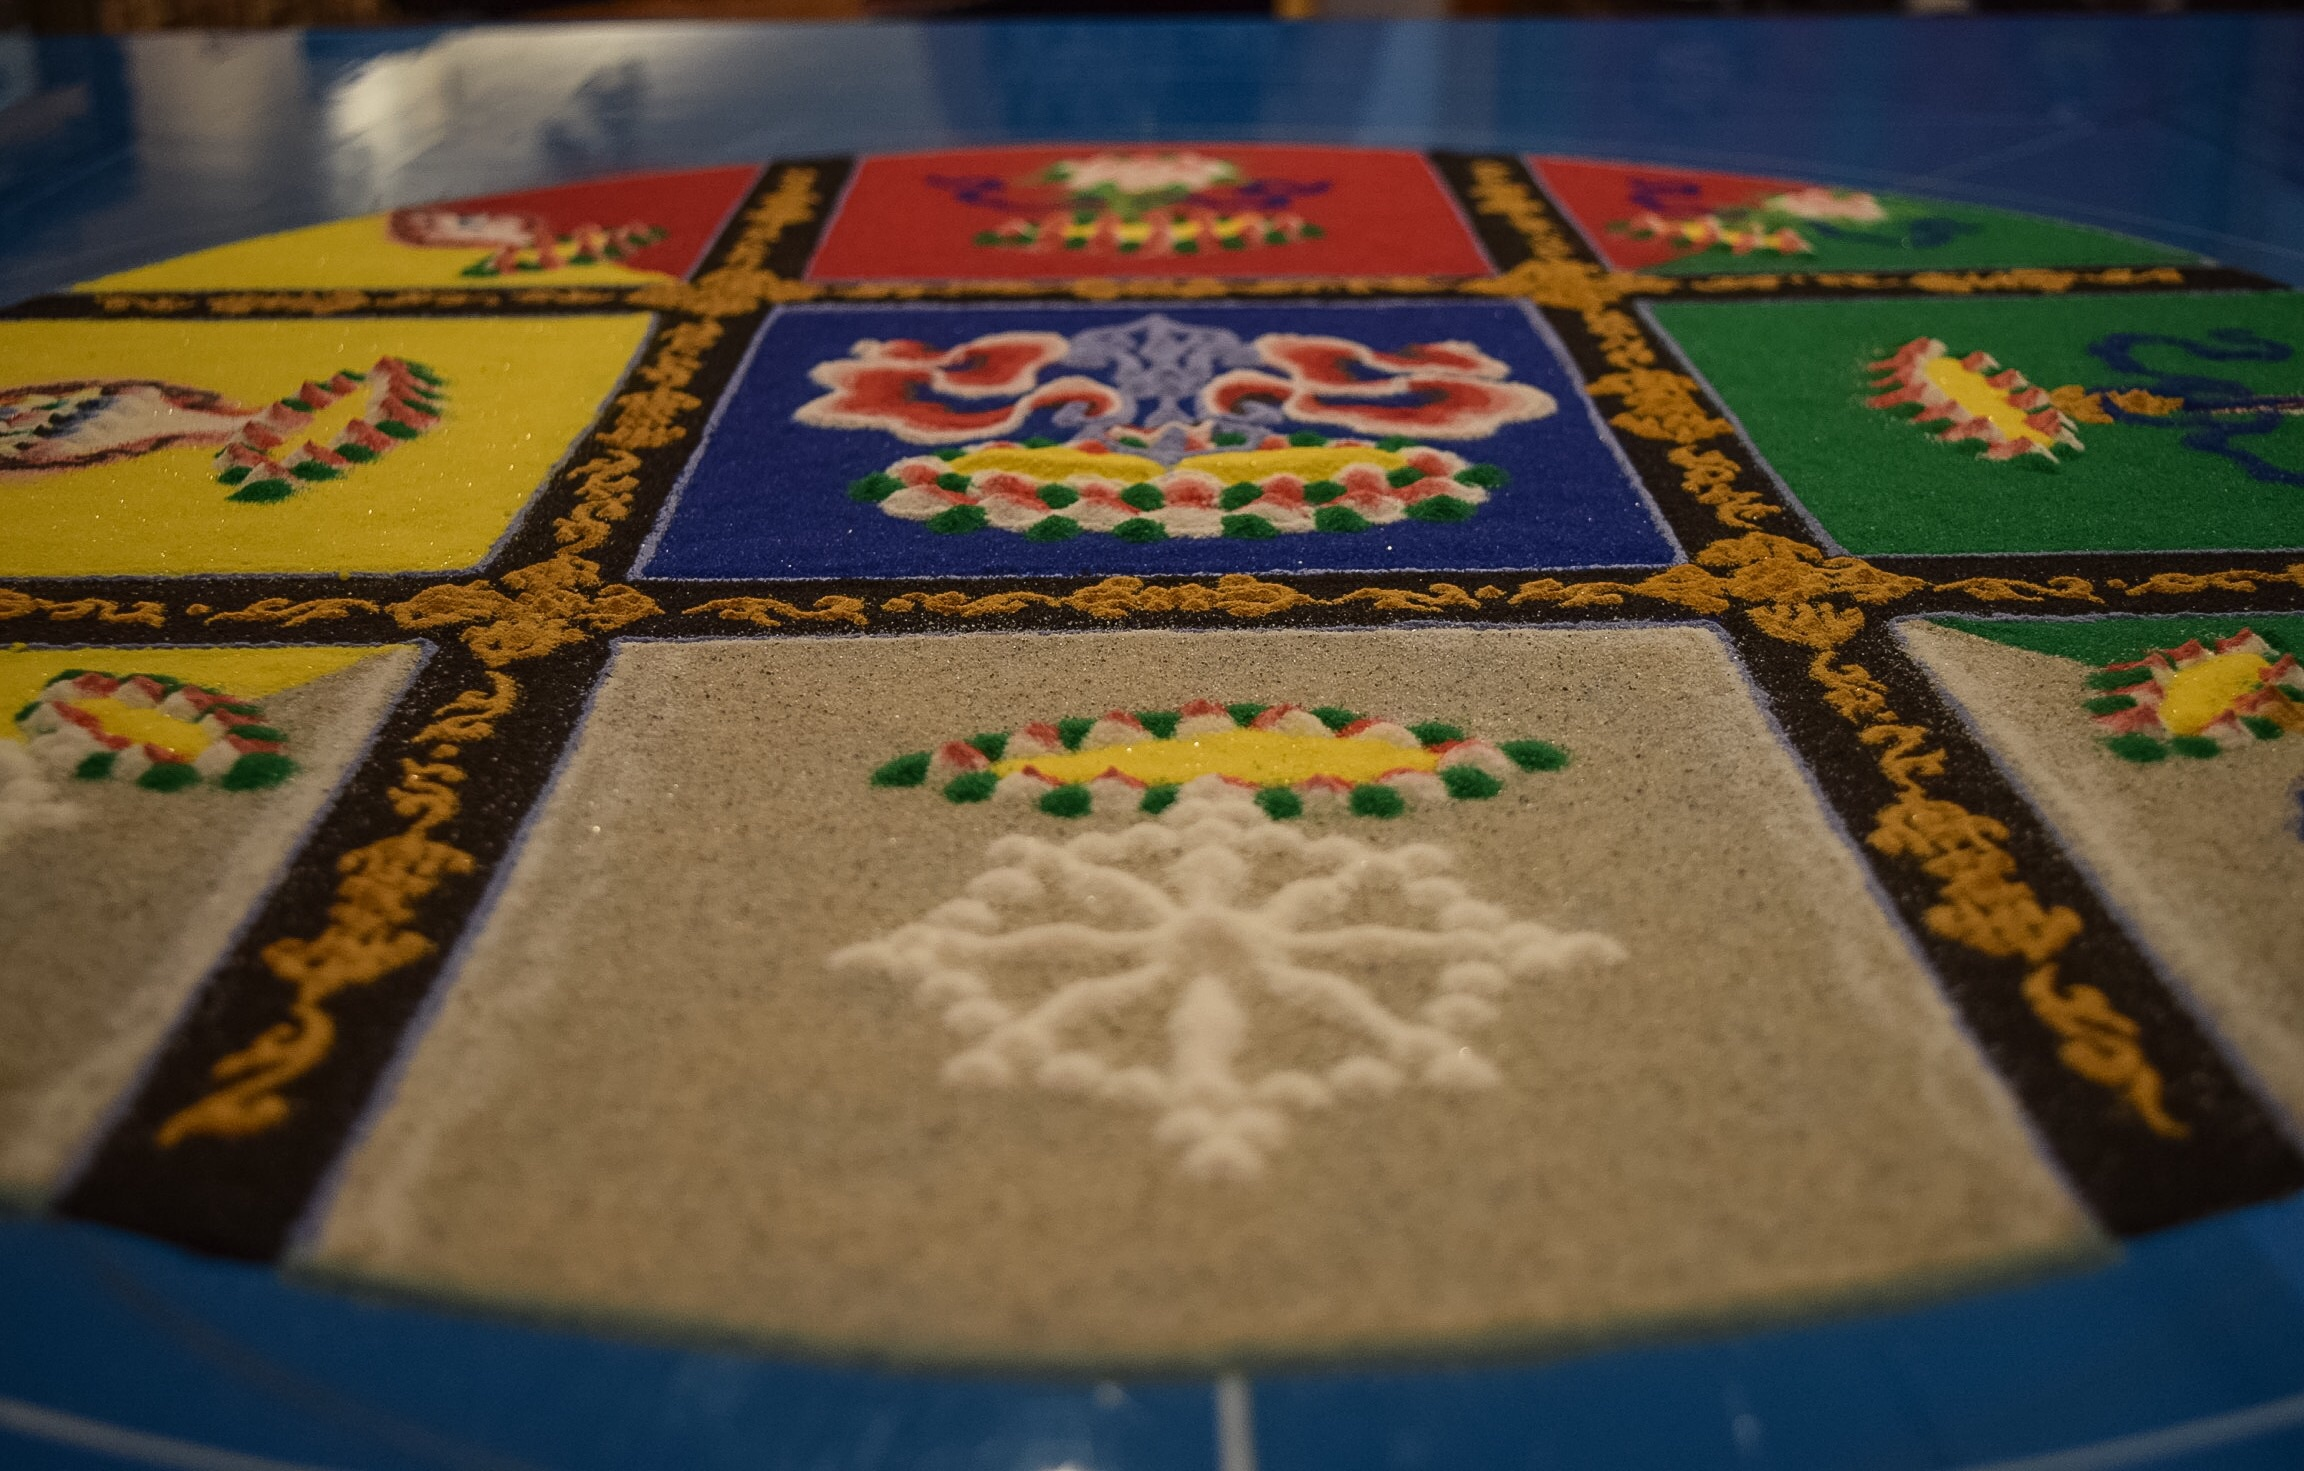 The sand mandala is a Tibetan Buddhist tradition involving the creation and subsequent destruction of mandalas to symbolize the transitory nature of material life.